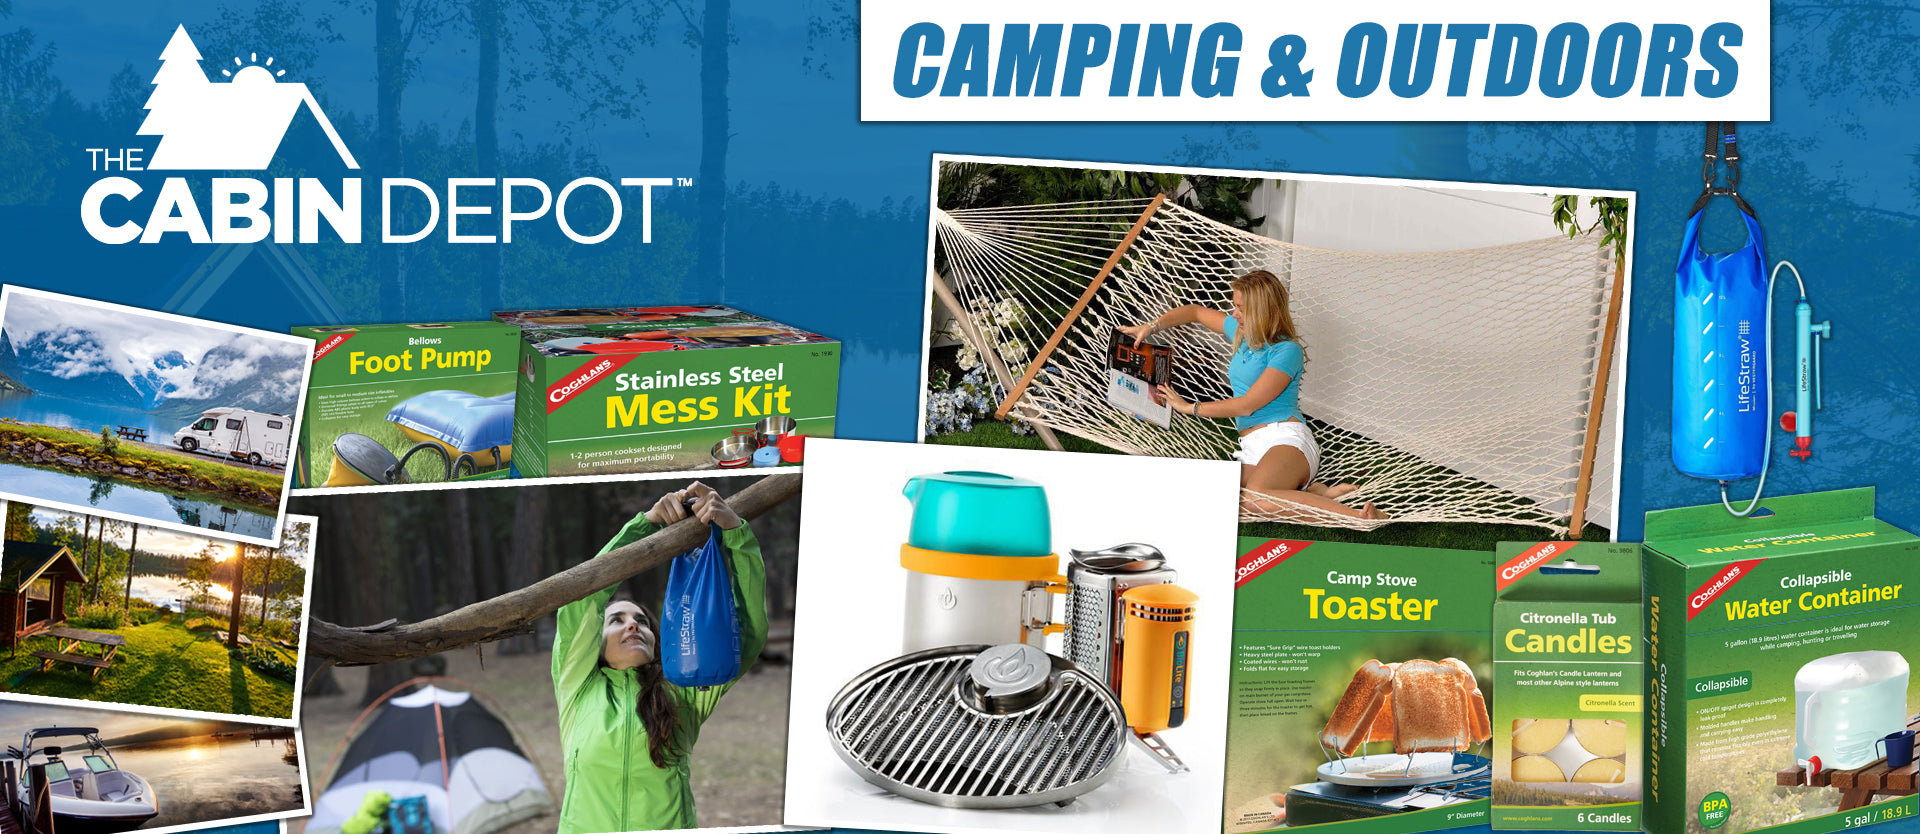 Camping Outdoors The Cabin Depot ™ Canada